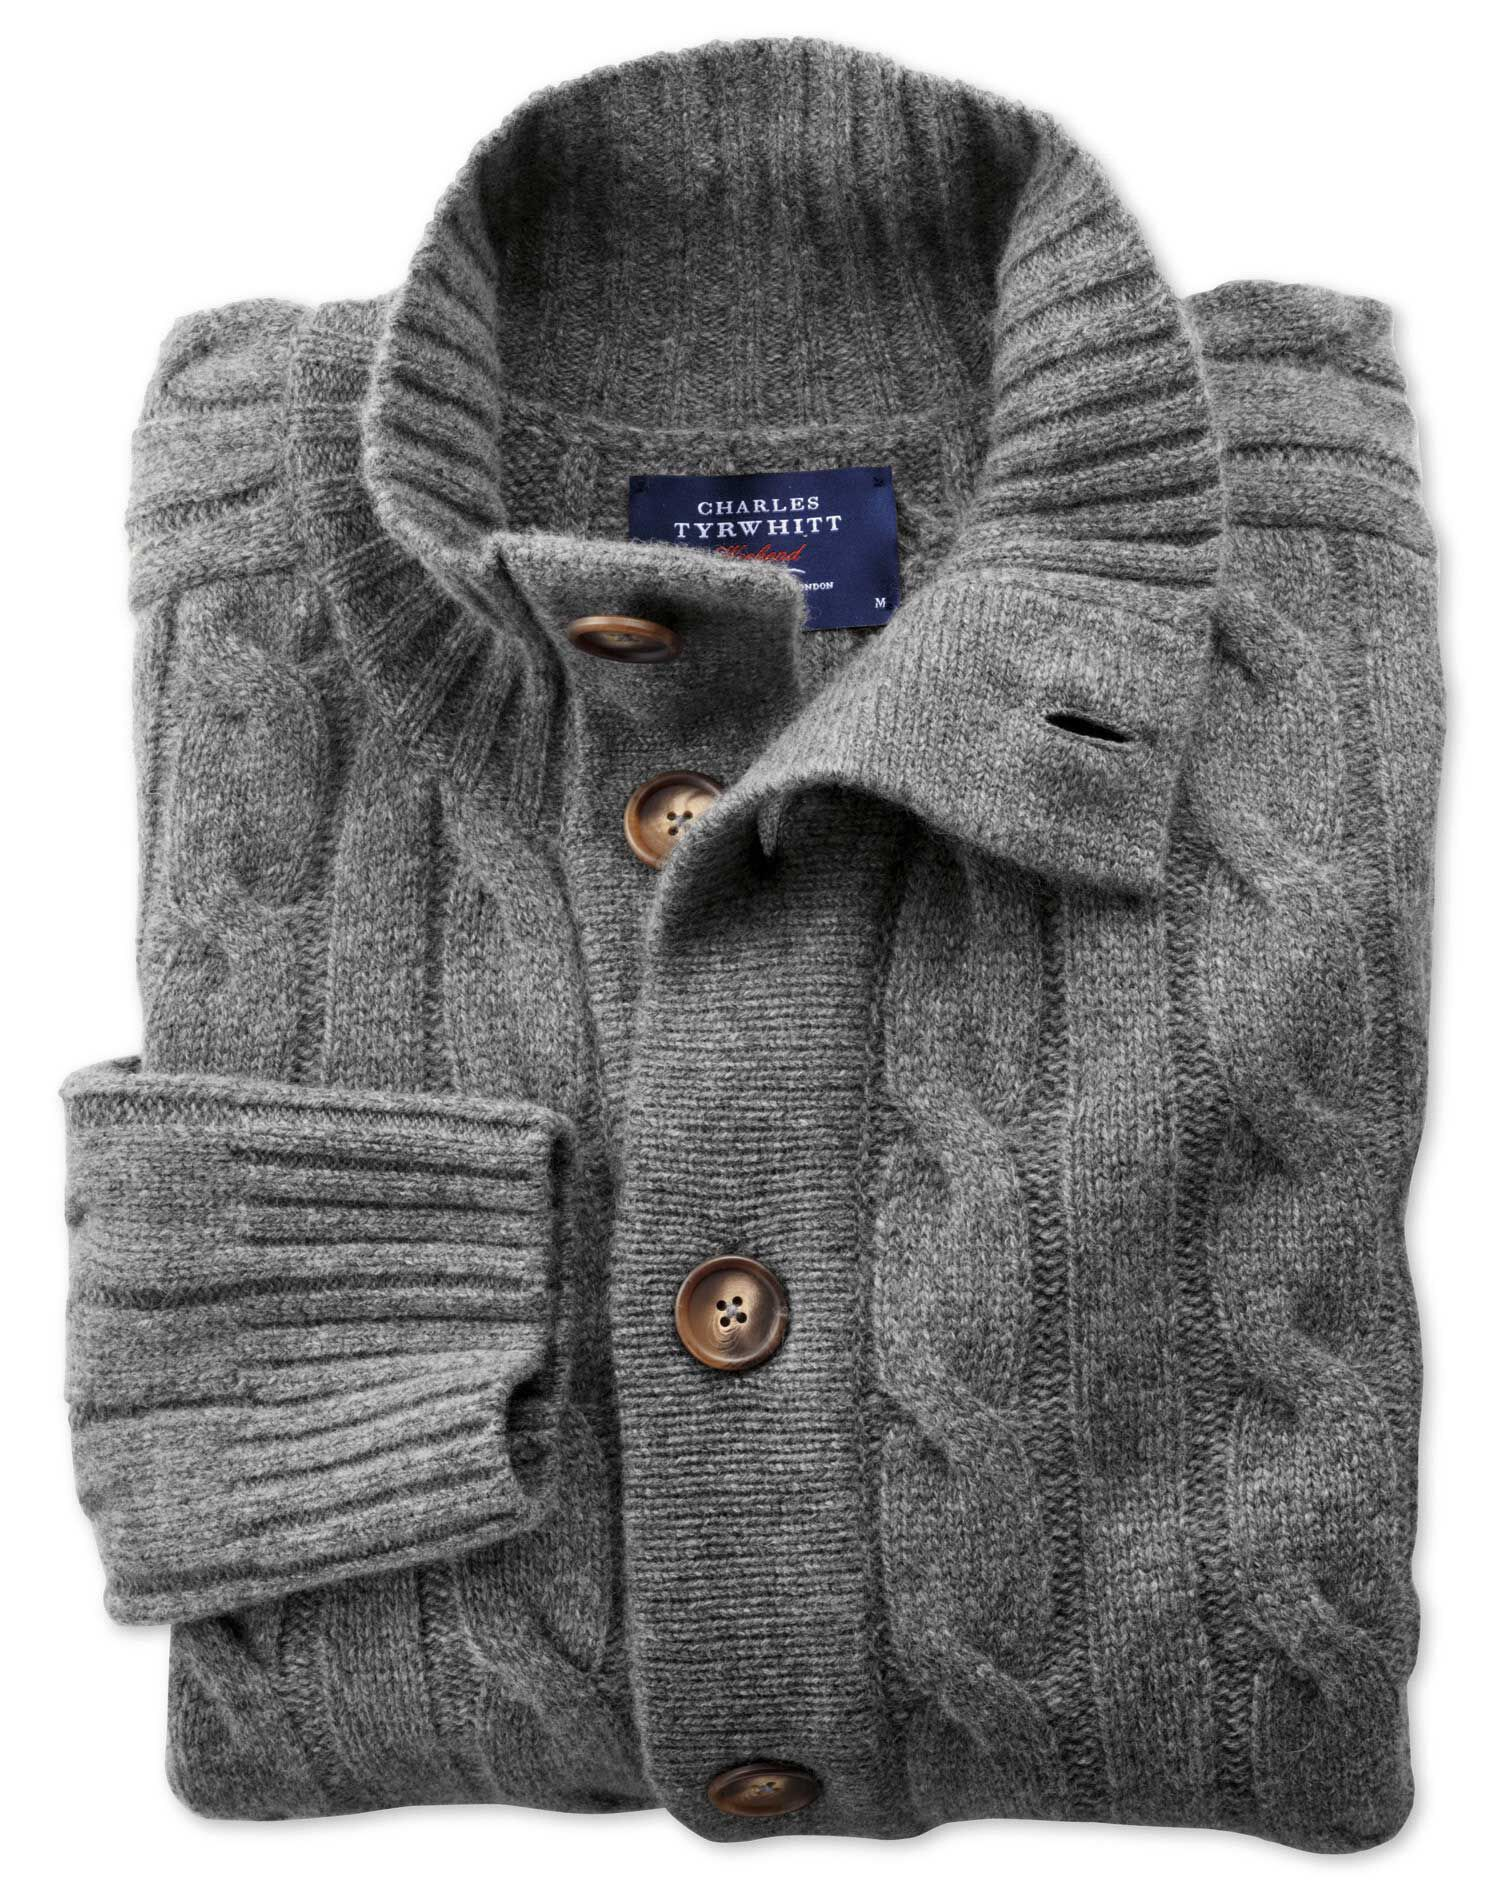 Grey Lambswool Cable Knit Cardigan Size XXL by Charles Tyrwhitt